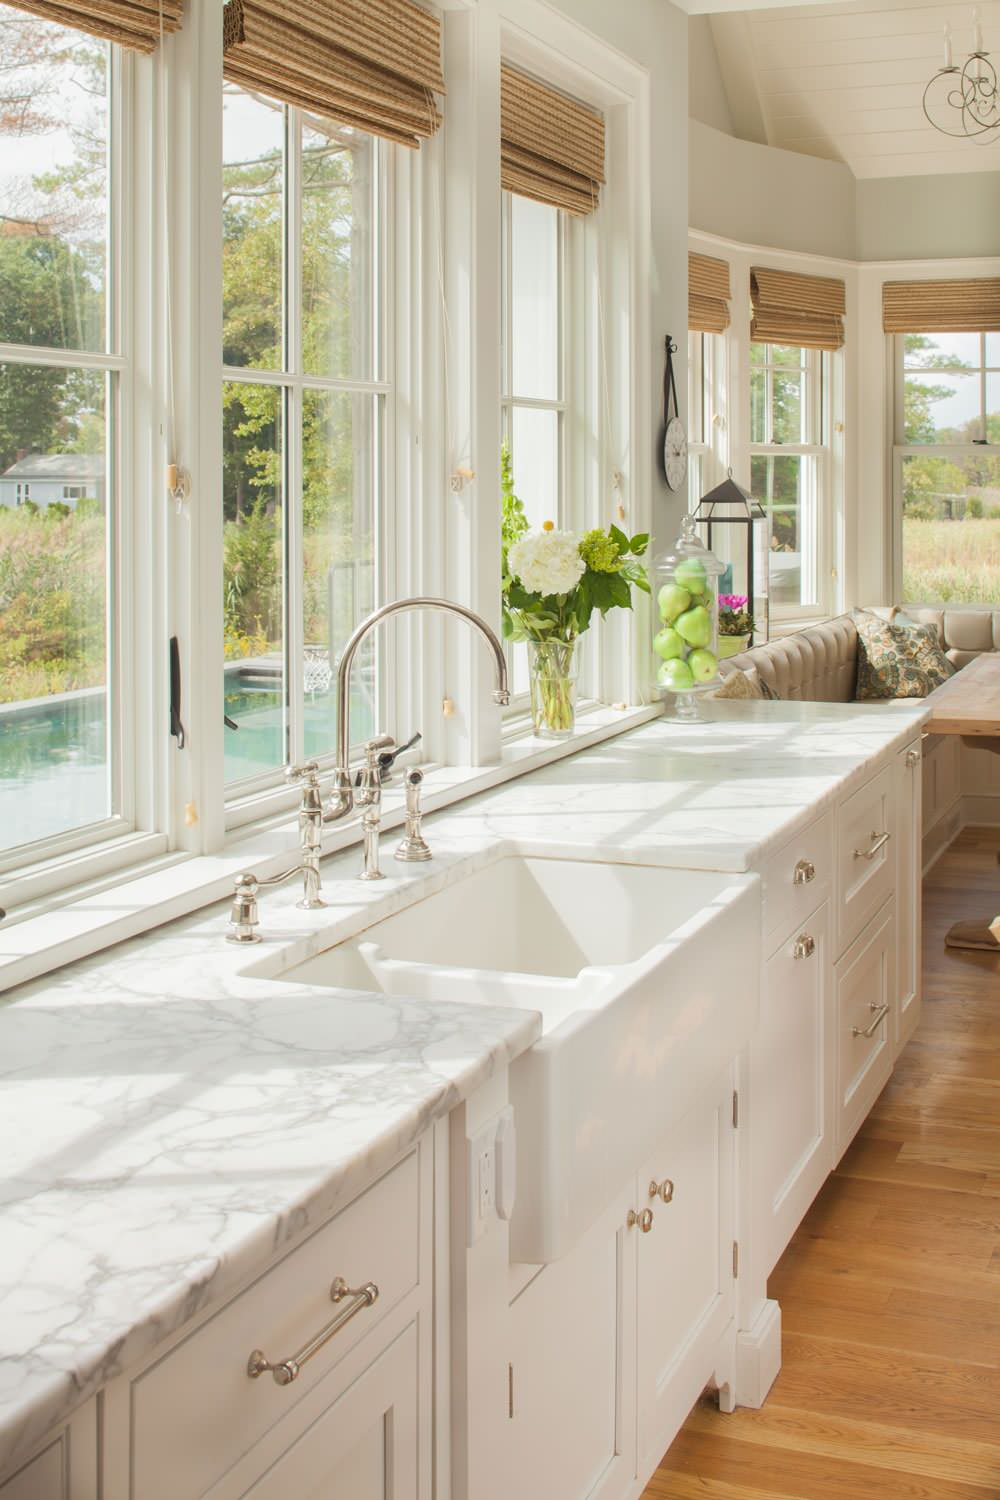 75 Beautiful Kitchen With Marble Countertops Pictures Ideas December 2020 Houzz